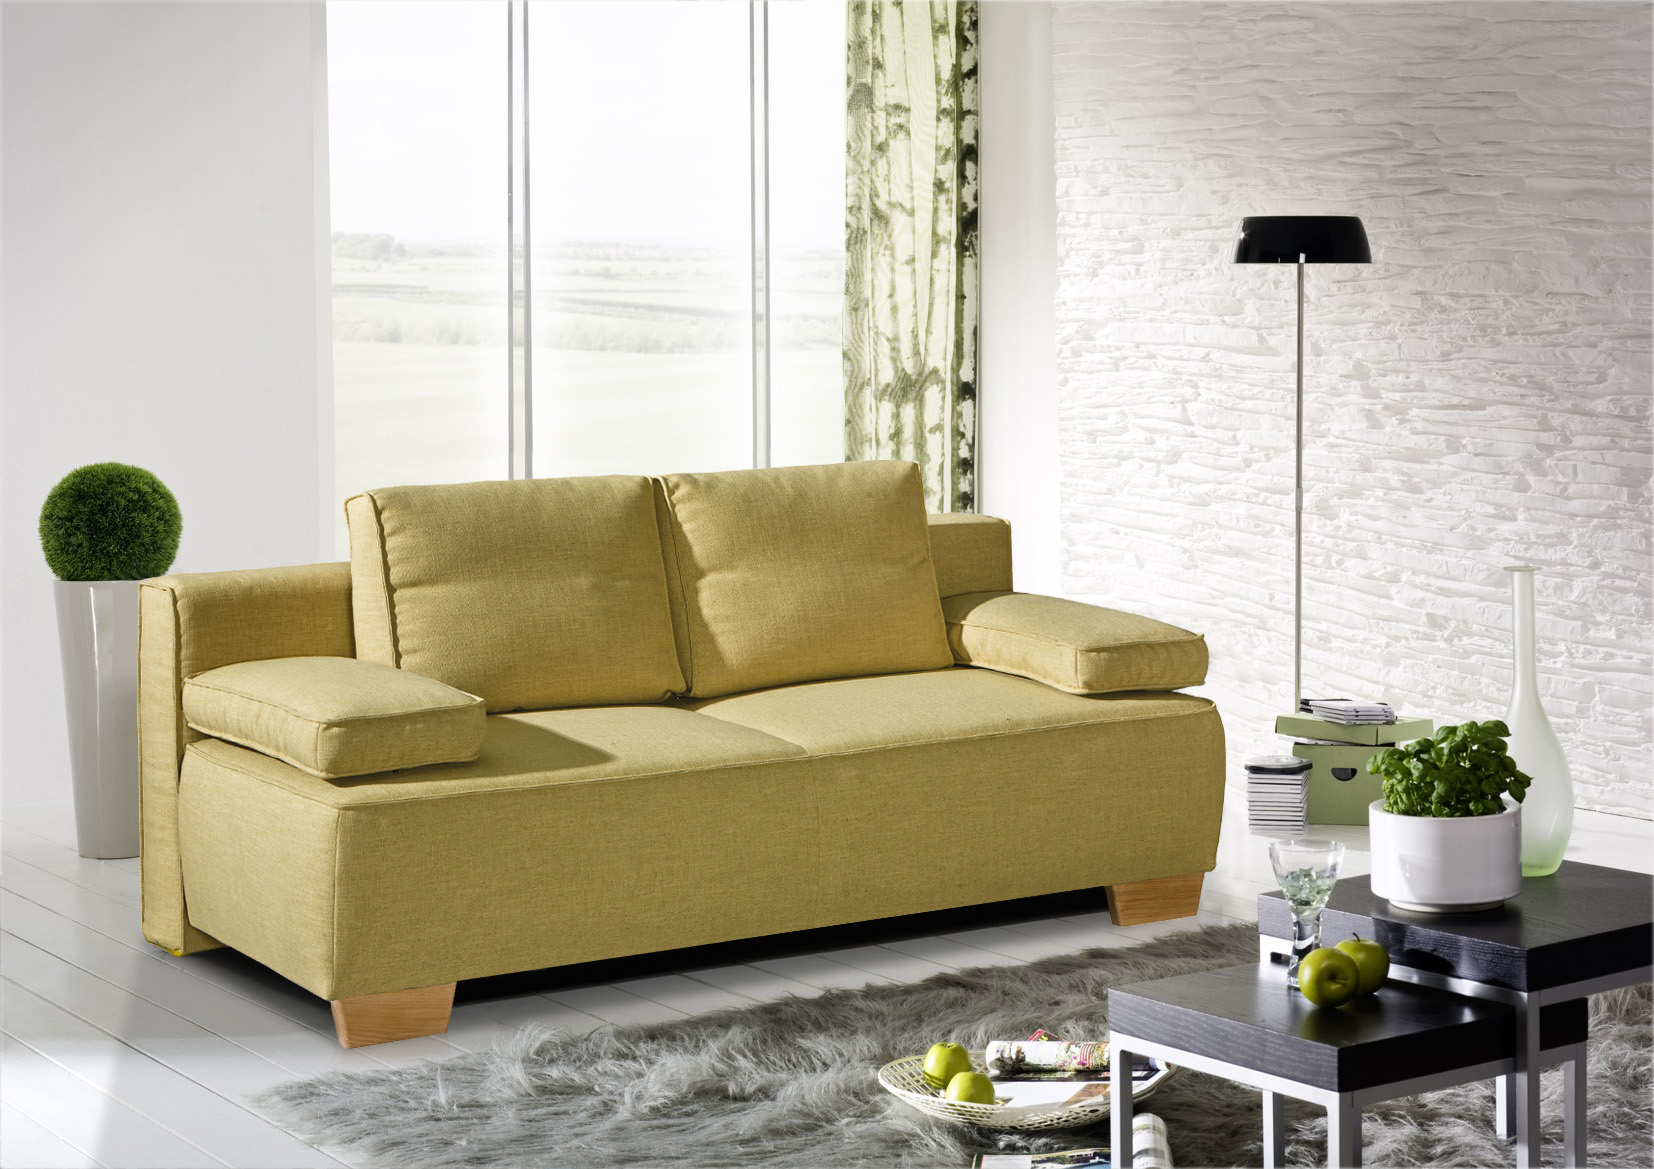 boxspring schlafsofa simple schlafsofa x flexa von bali schlafsofa beige boxspring schlafsofa x. Black Bedroom Furniture Sets. Home Design Ideas